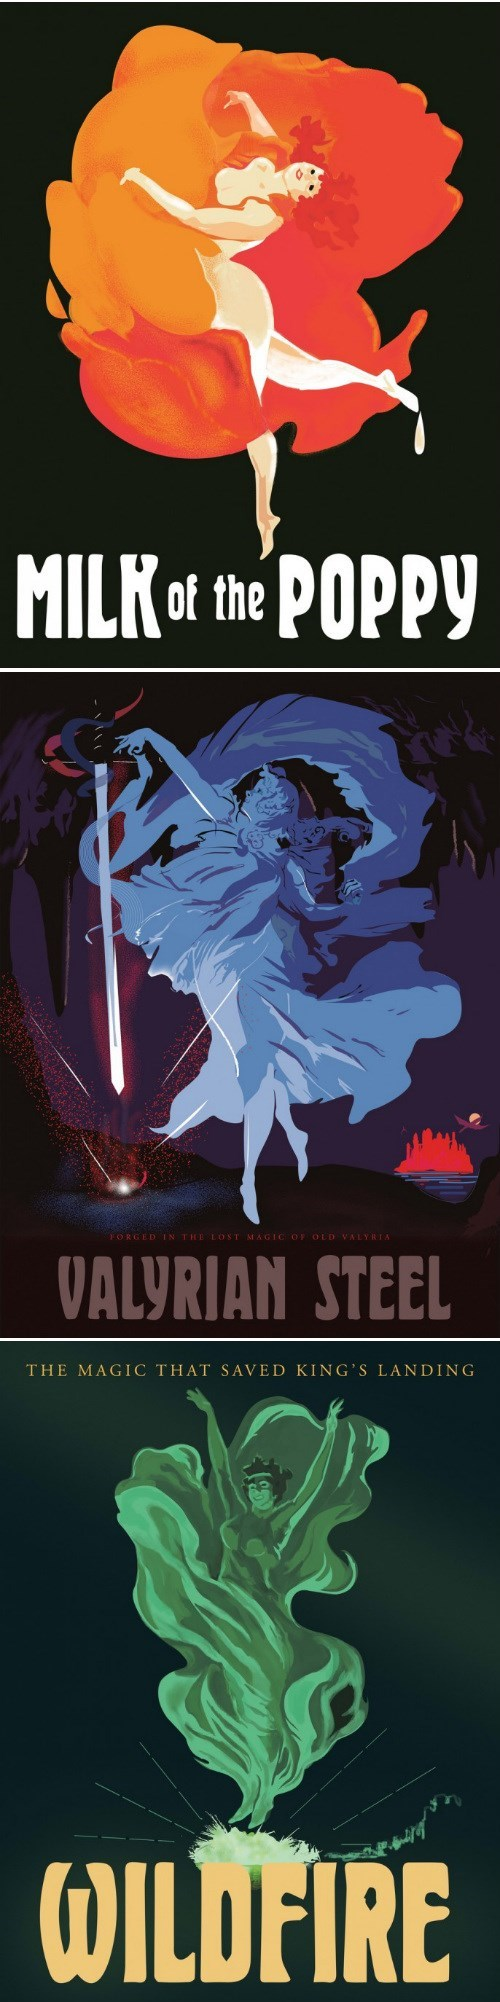 cabaret Game of Thrones posters - 8176282624